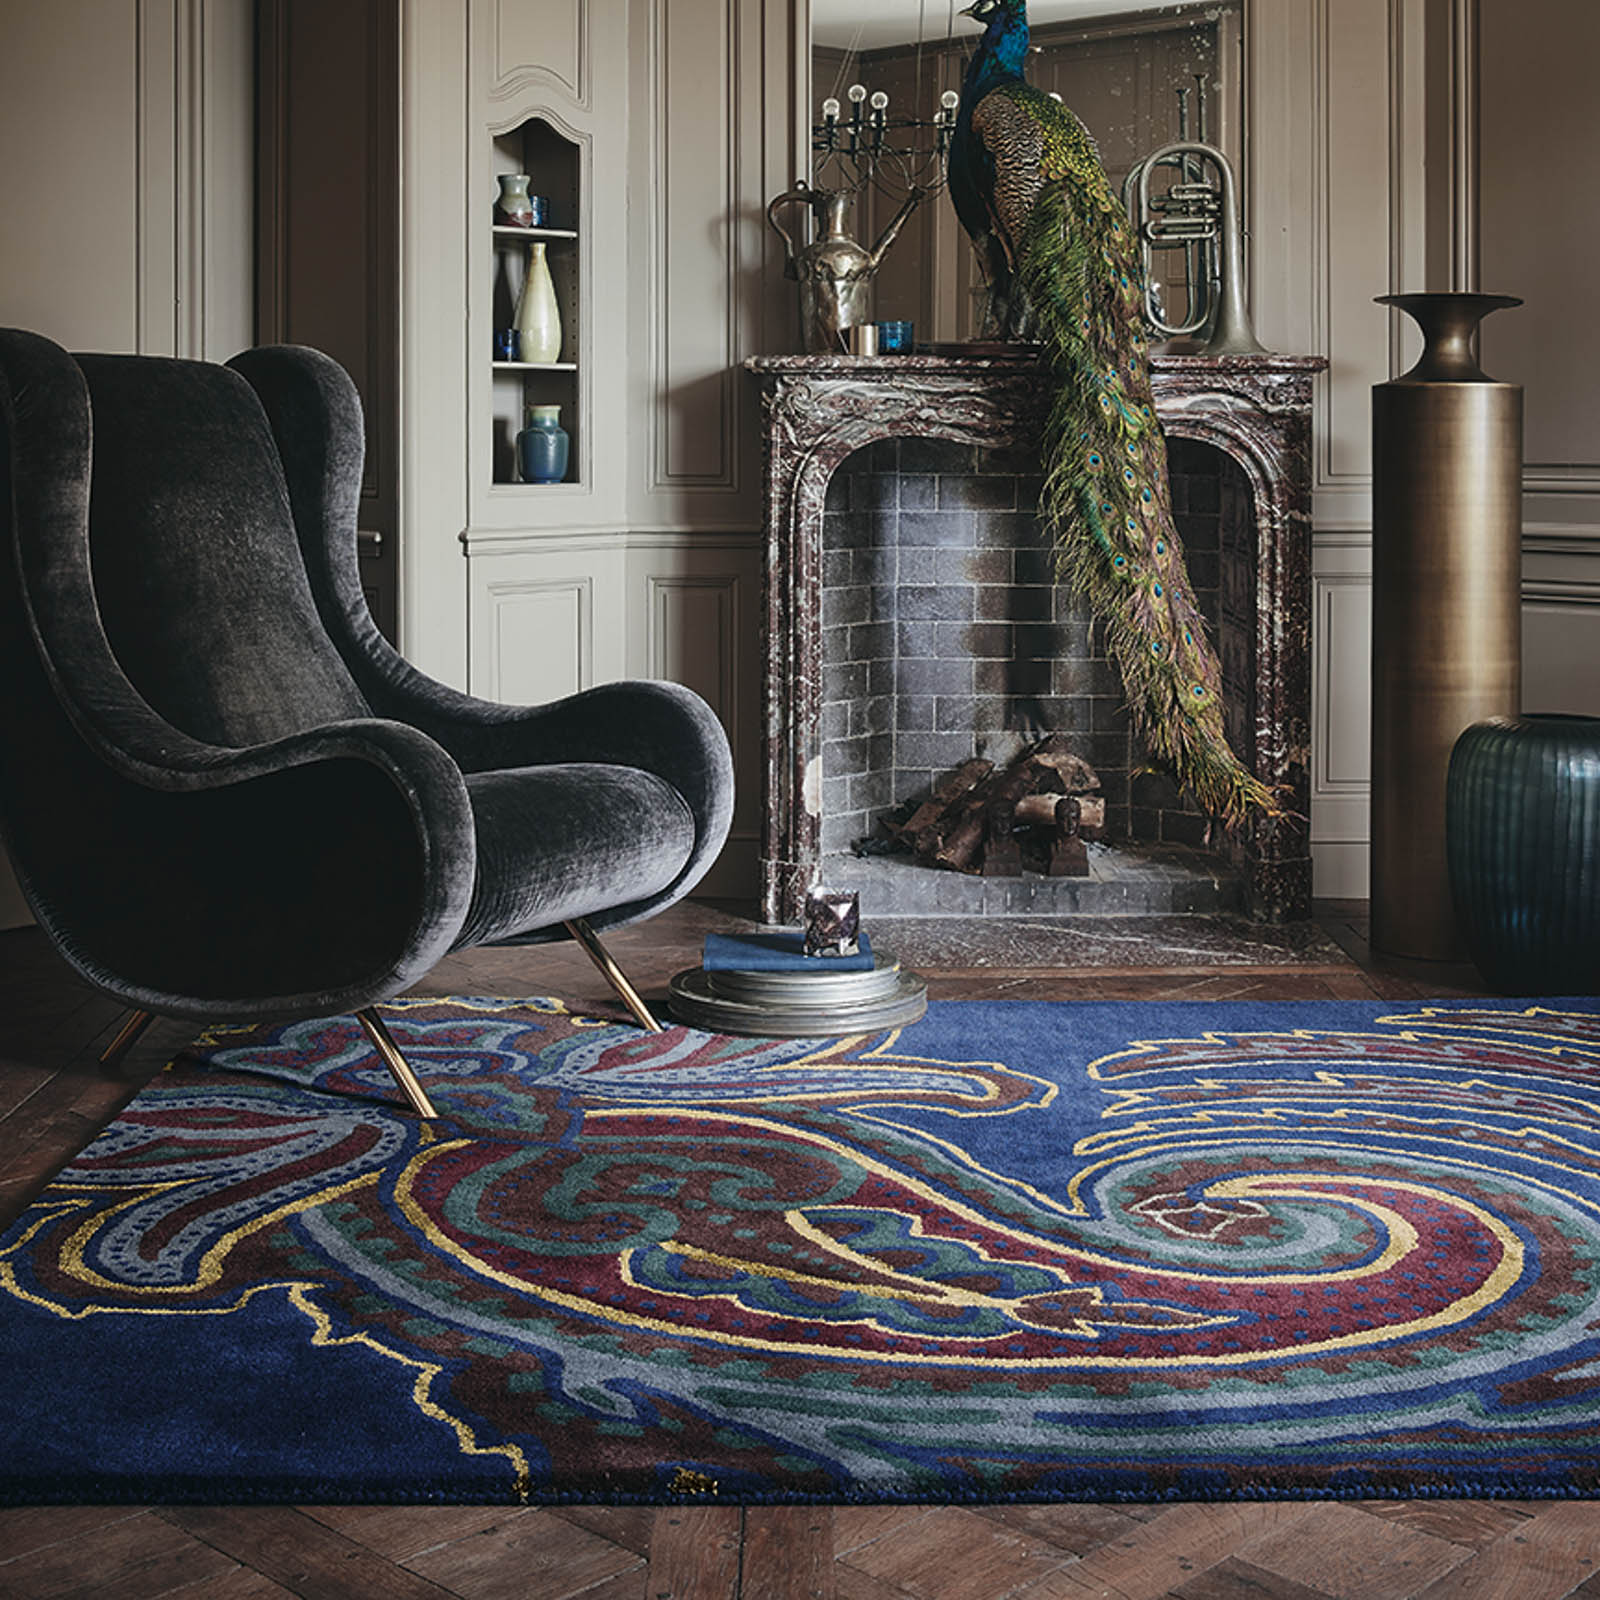 Paisgeo Rugs 57508 by Ted Baker in Navy